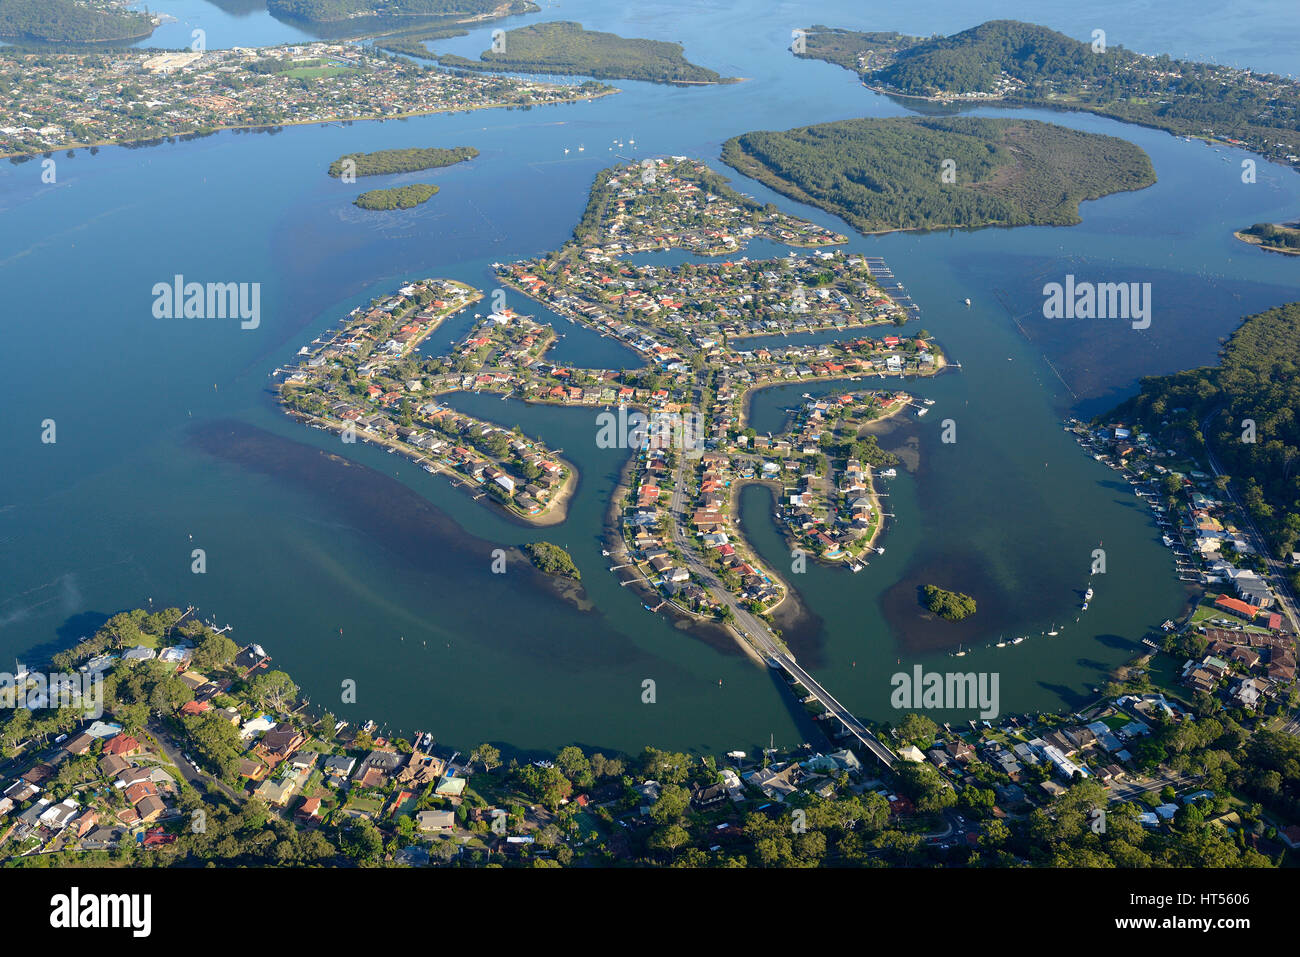 CANAL ESTATE OF ST HUBERTS ISLAND (aerial view). New South Wales, Australia. - Stock Image